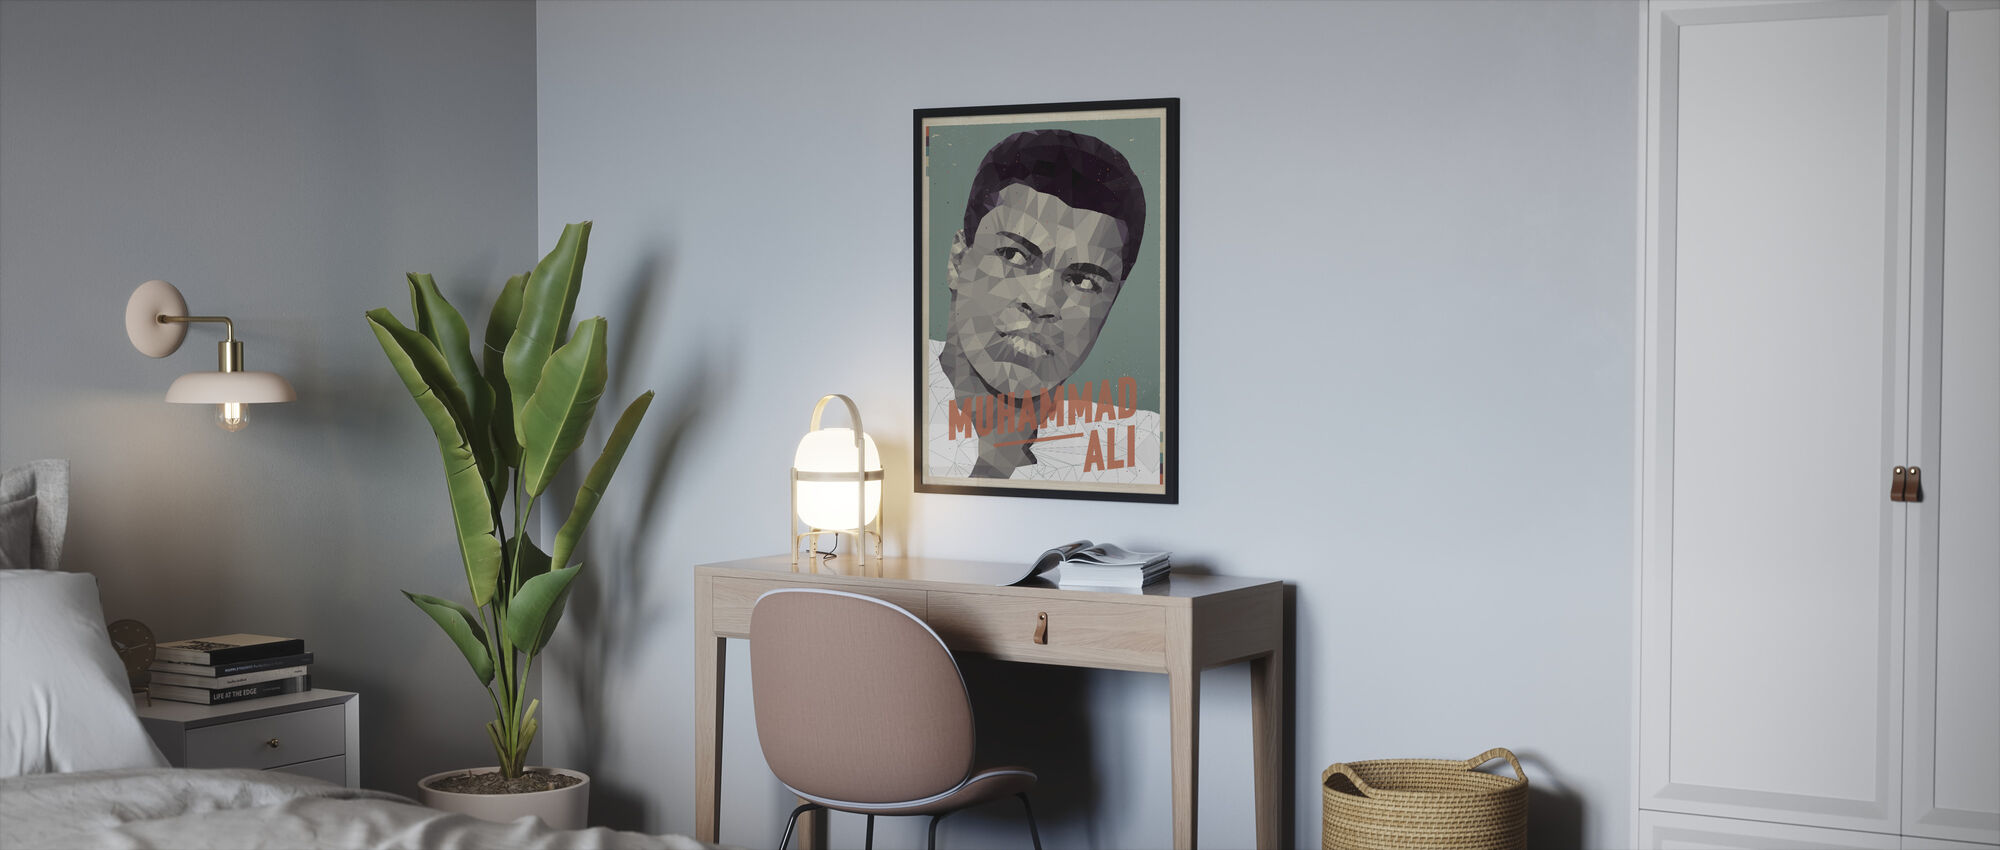 Float Like a Butterfly - Sting Like a Bee - Framed print - Bedroom